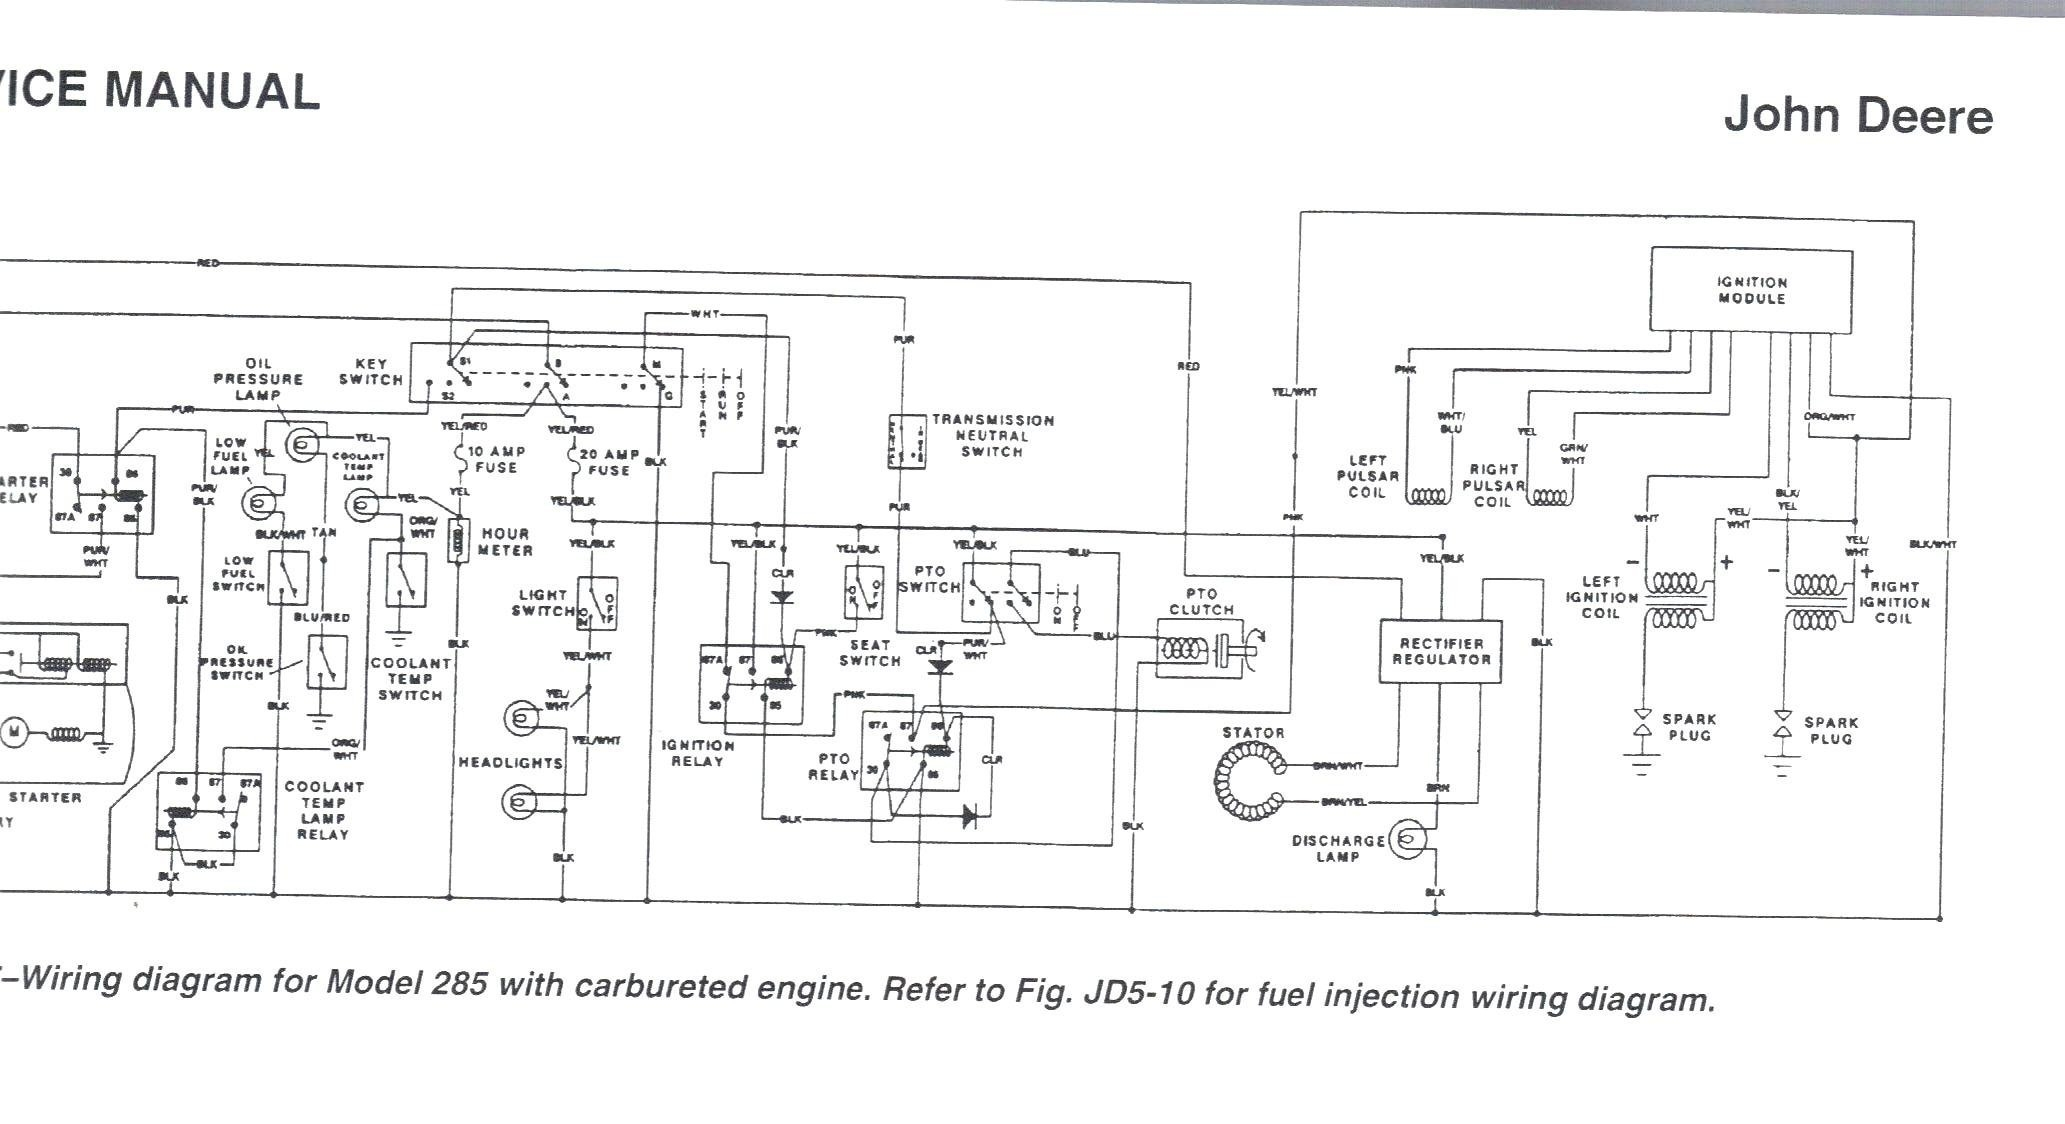 john deere lt155 wiring schematic | free wiring diagram lt155 john deere ignition wiring diagram #1